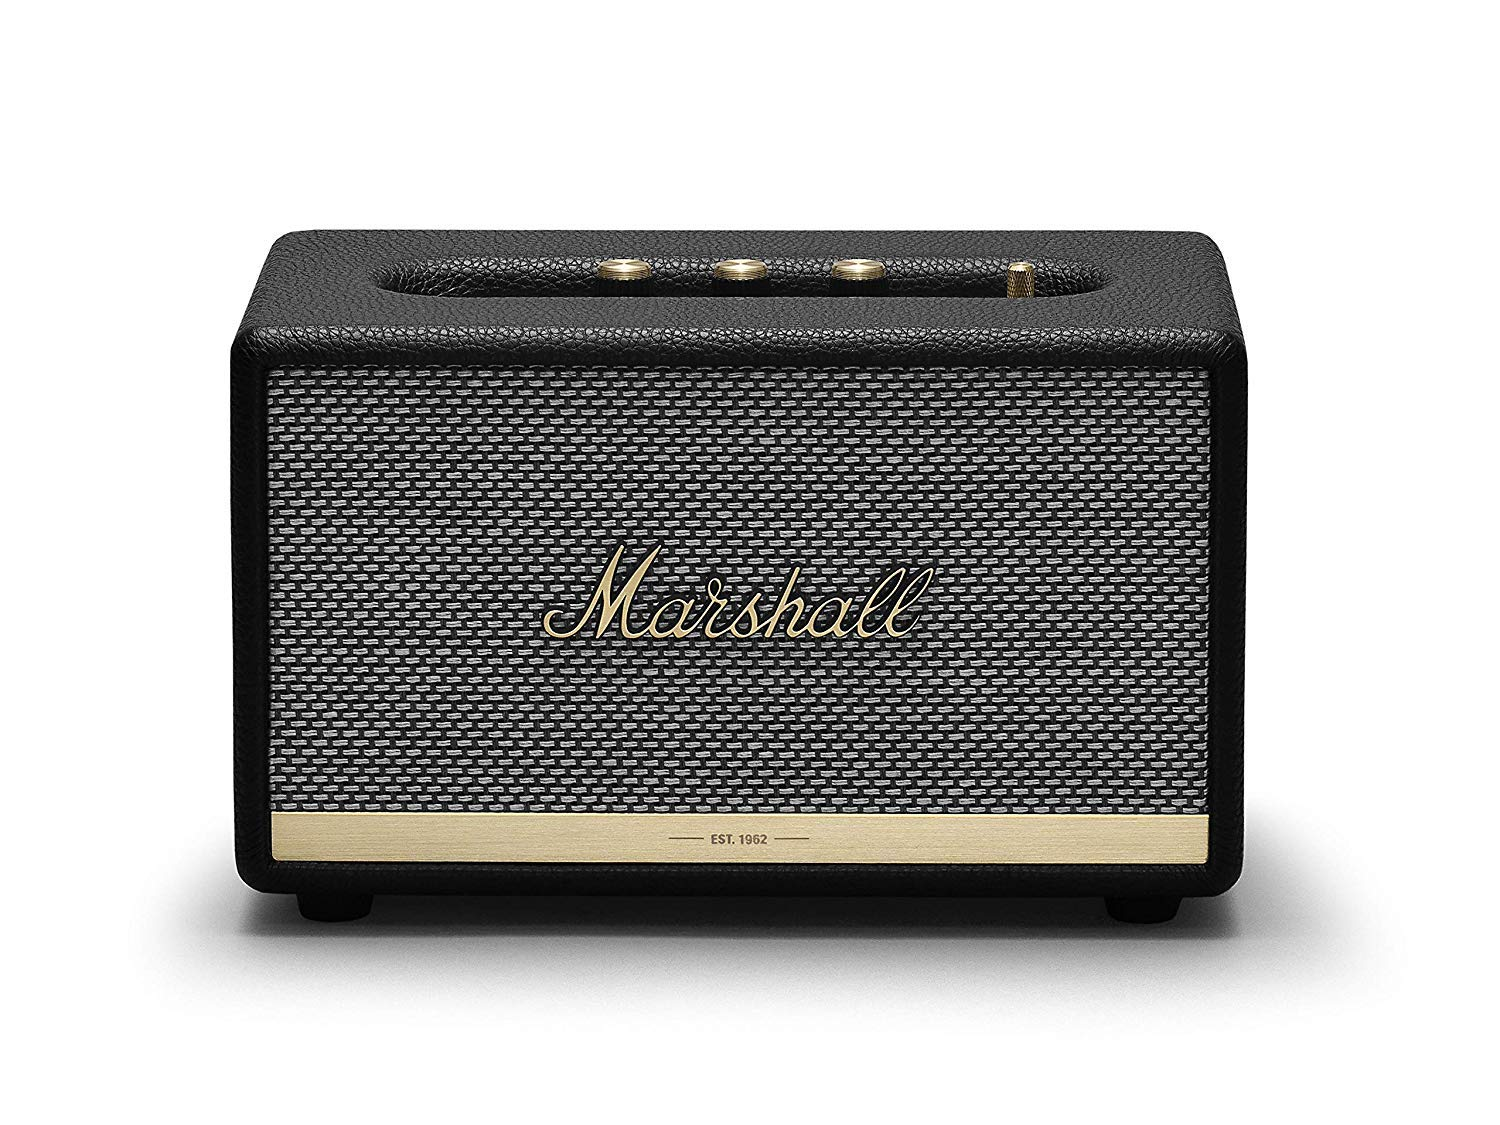 마샬 액톤 II 블루투스 스피커 블랙 [리뉴 제품] Marshall Acton II Wireless Bluetooth Speaker - Black (Certified Refurbished)